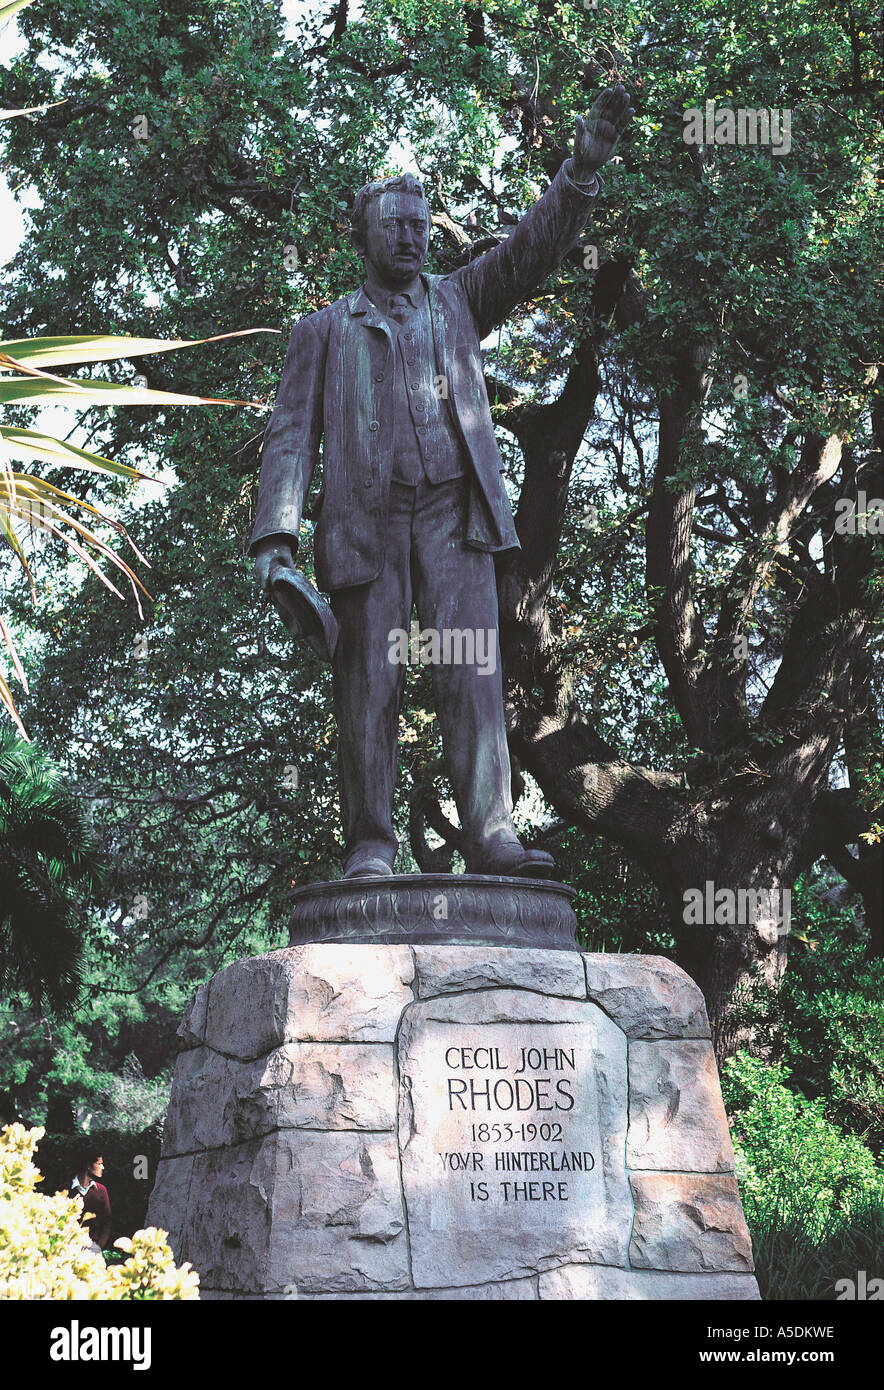 Statue of Cecil John Rhodes in the grounds of the South African Museum Cape Town South Africa - Stock Image